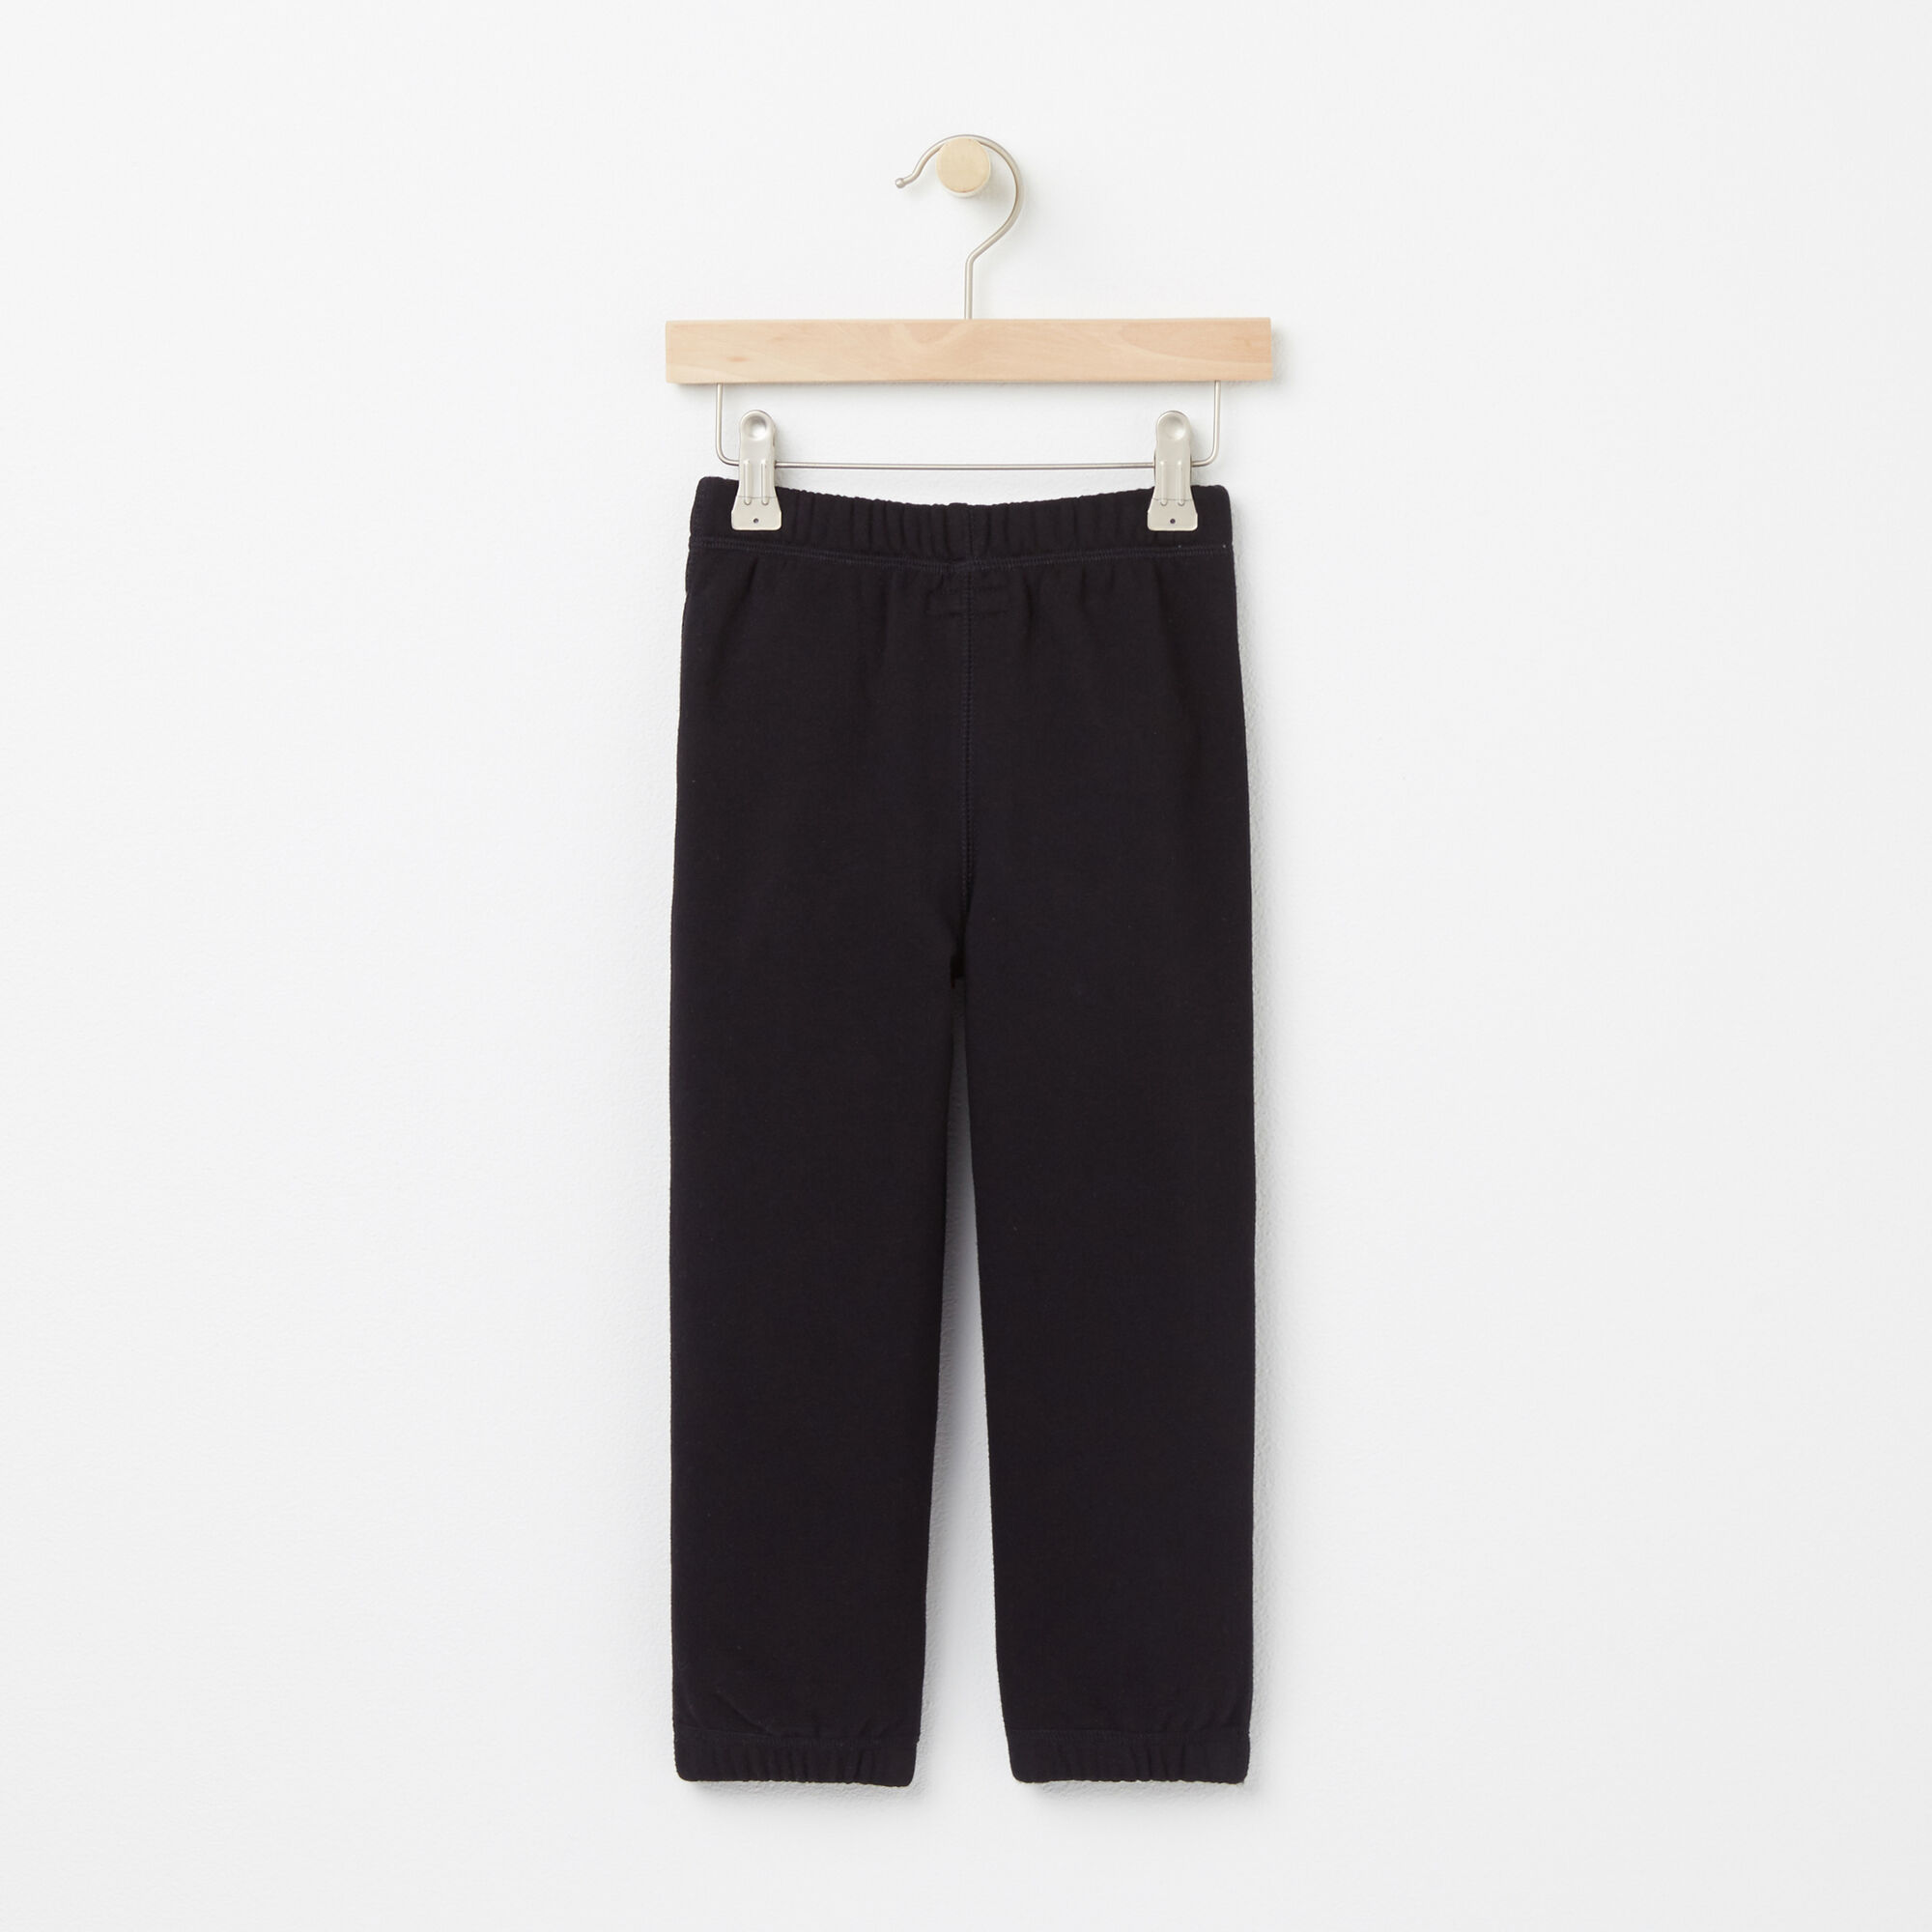 Toddler True North Original Sweatpant